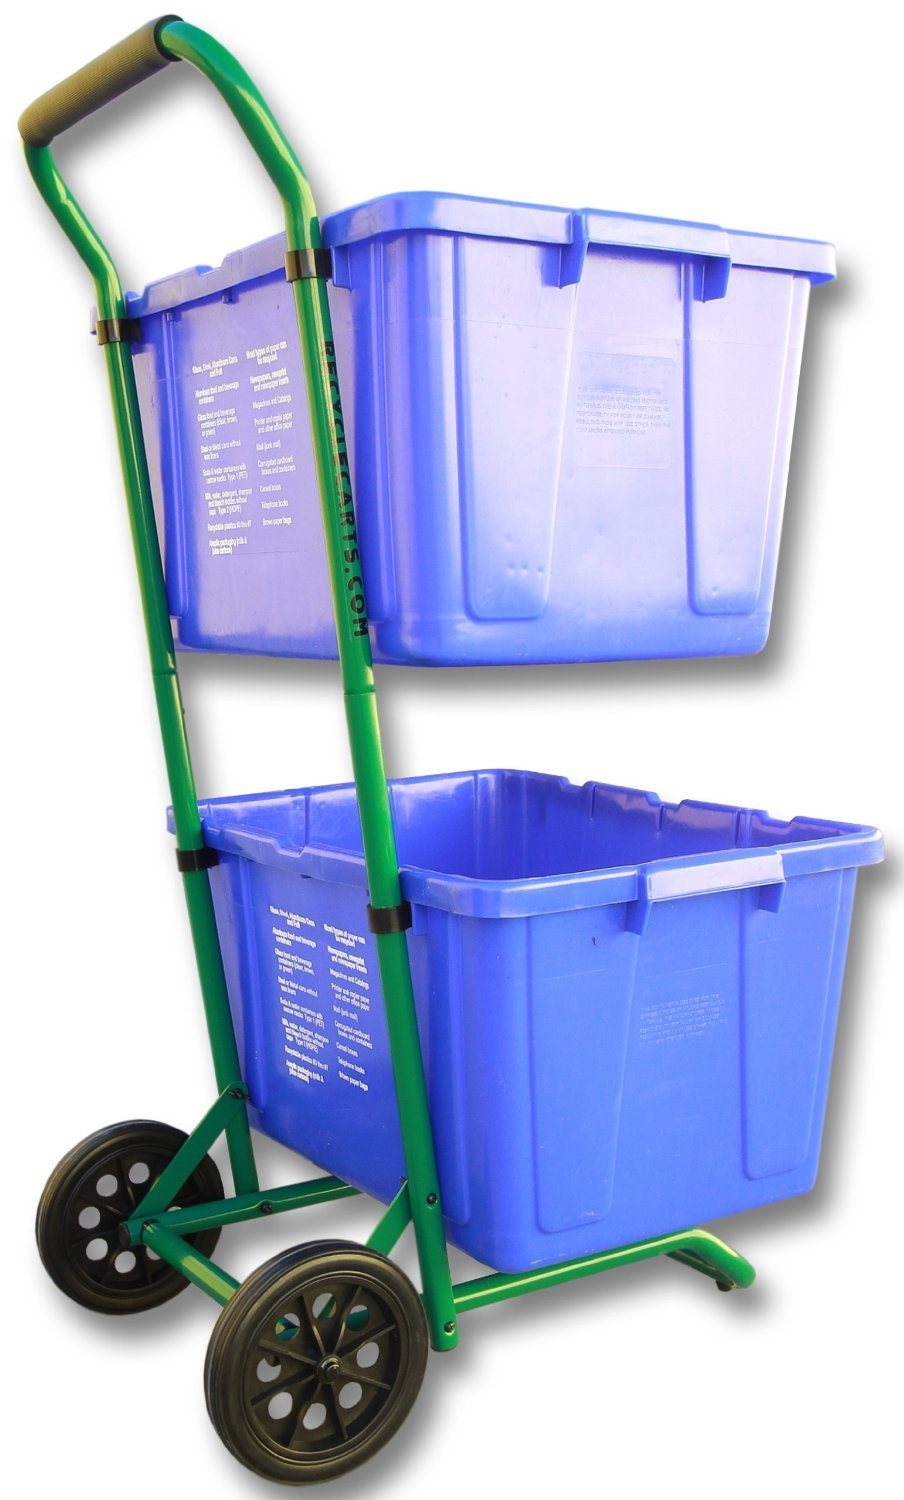 Recycle Cart for Recycle Bins Robust Recycle Cart for Simple Recycle Bin Moving | Recycle Caddy